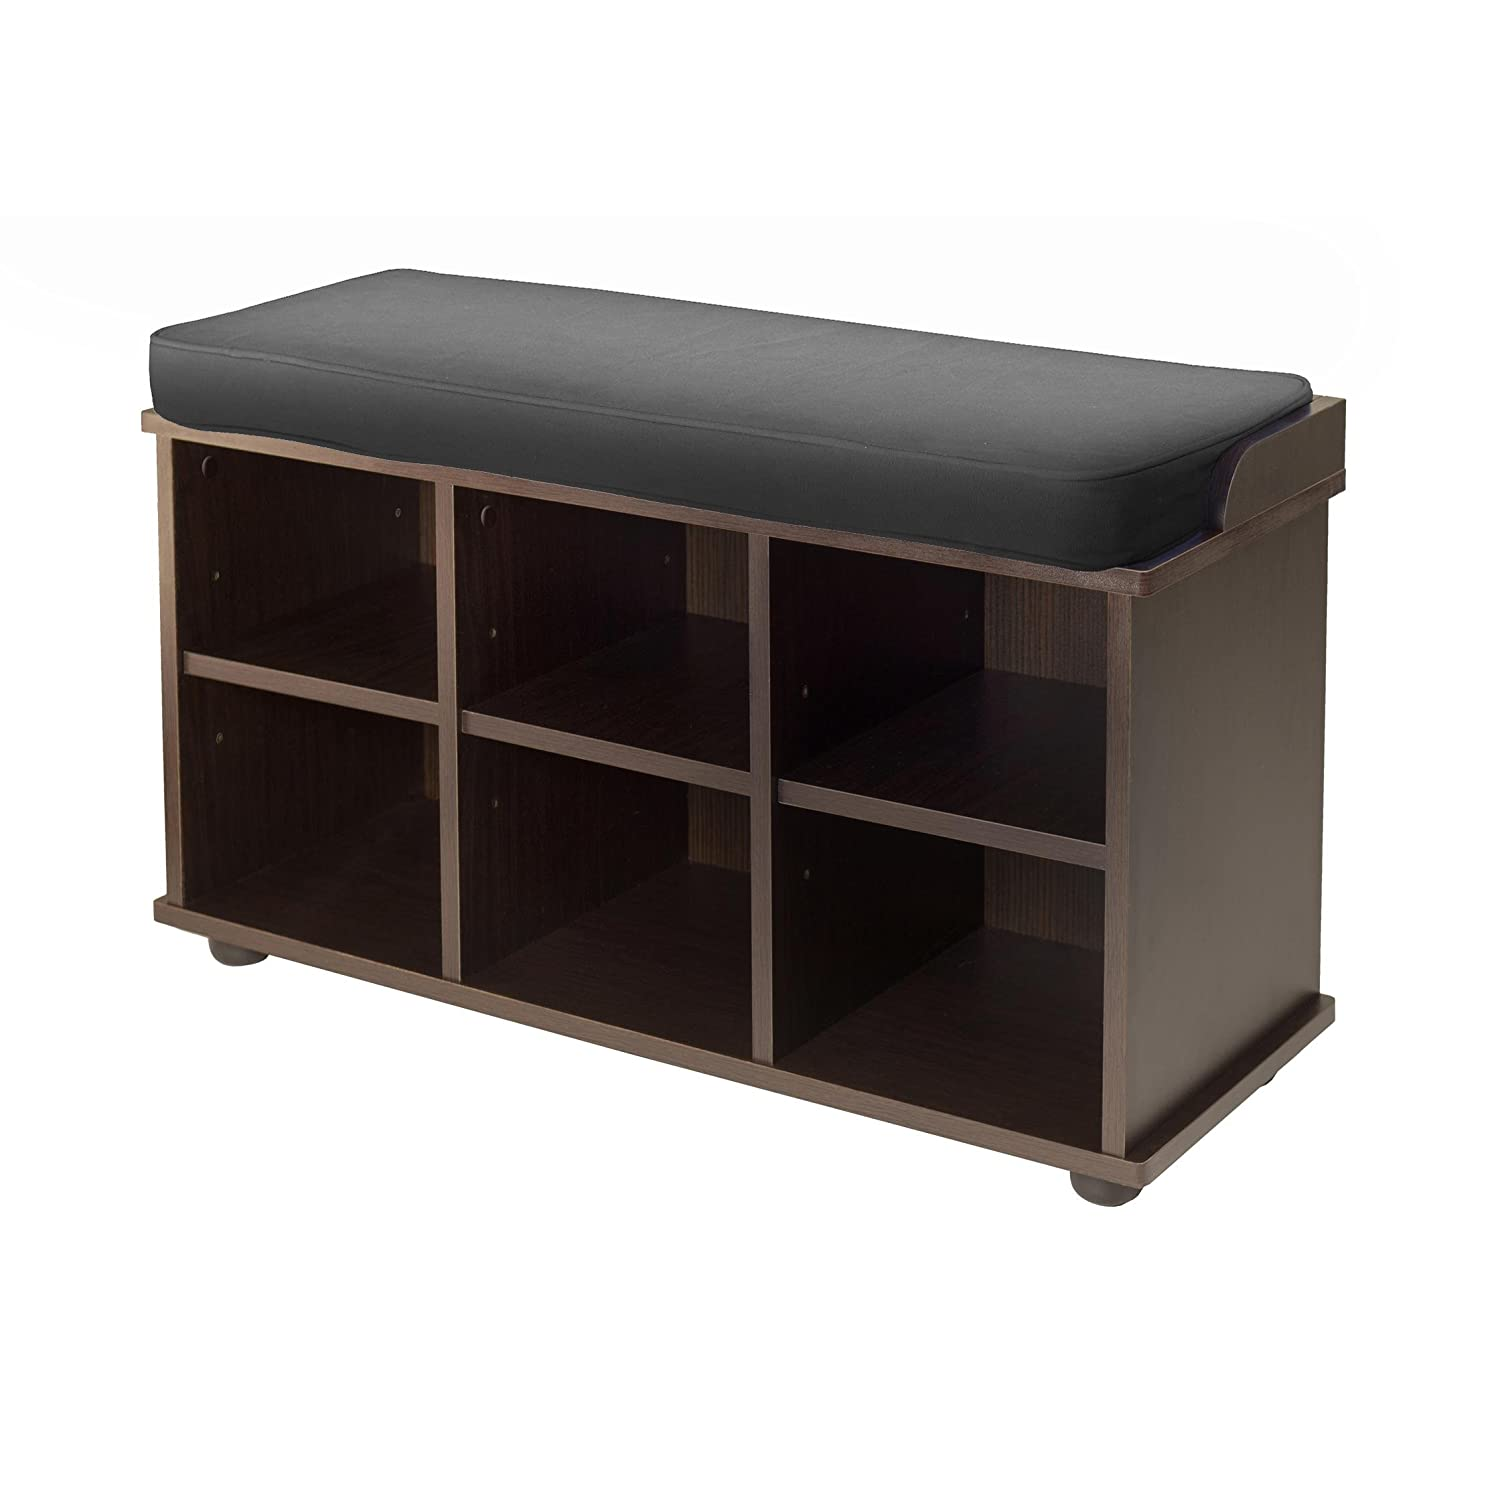 Amazon.com: PlumStruck - Storage Benches / Entryway Furniture